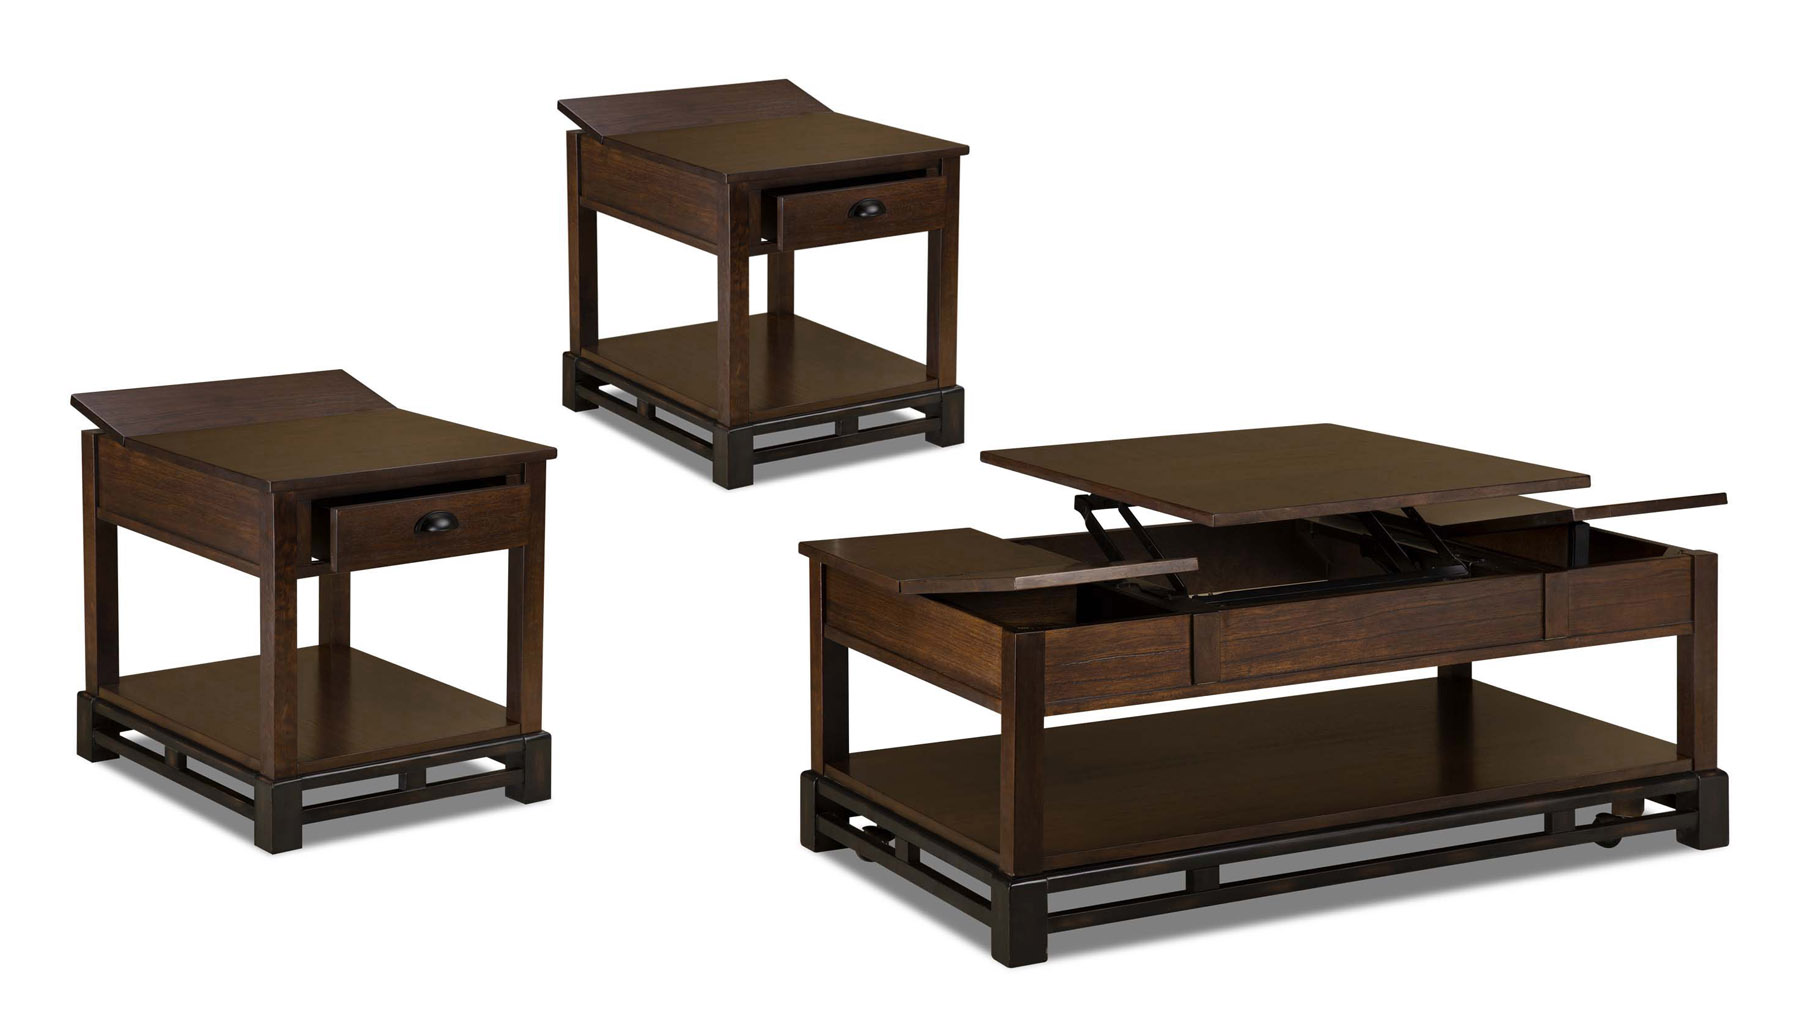 Catnapper lift top storage coffee table and 2 end tables 870 049 055x2 tables consoles Lift top coffee tables storage